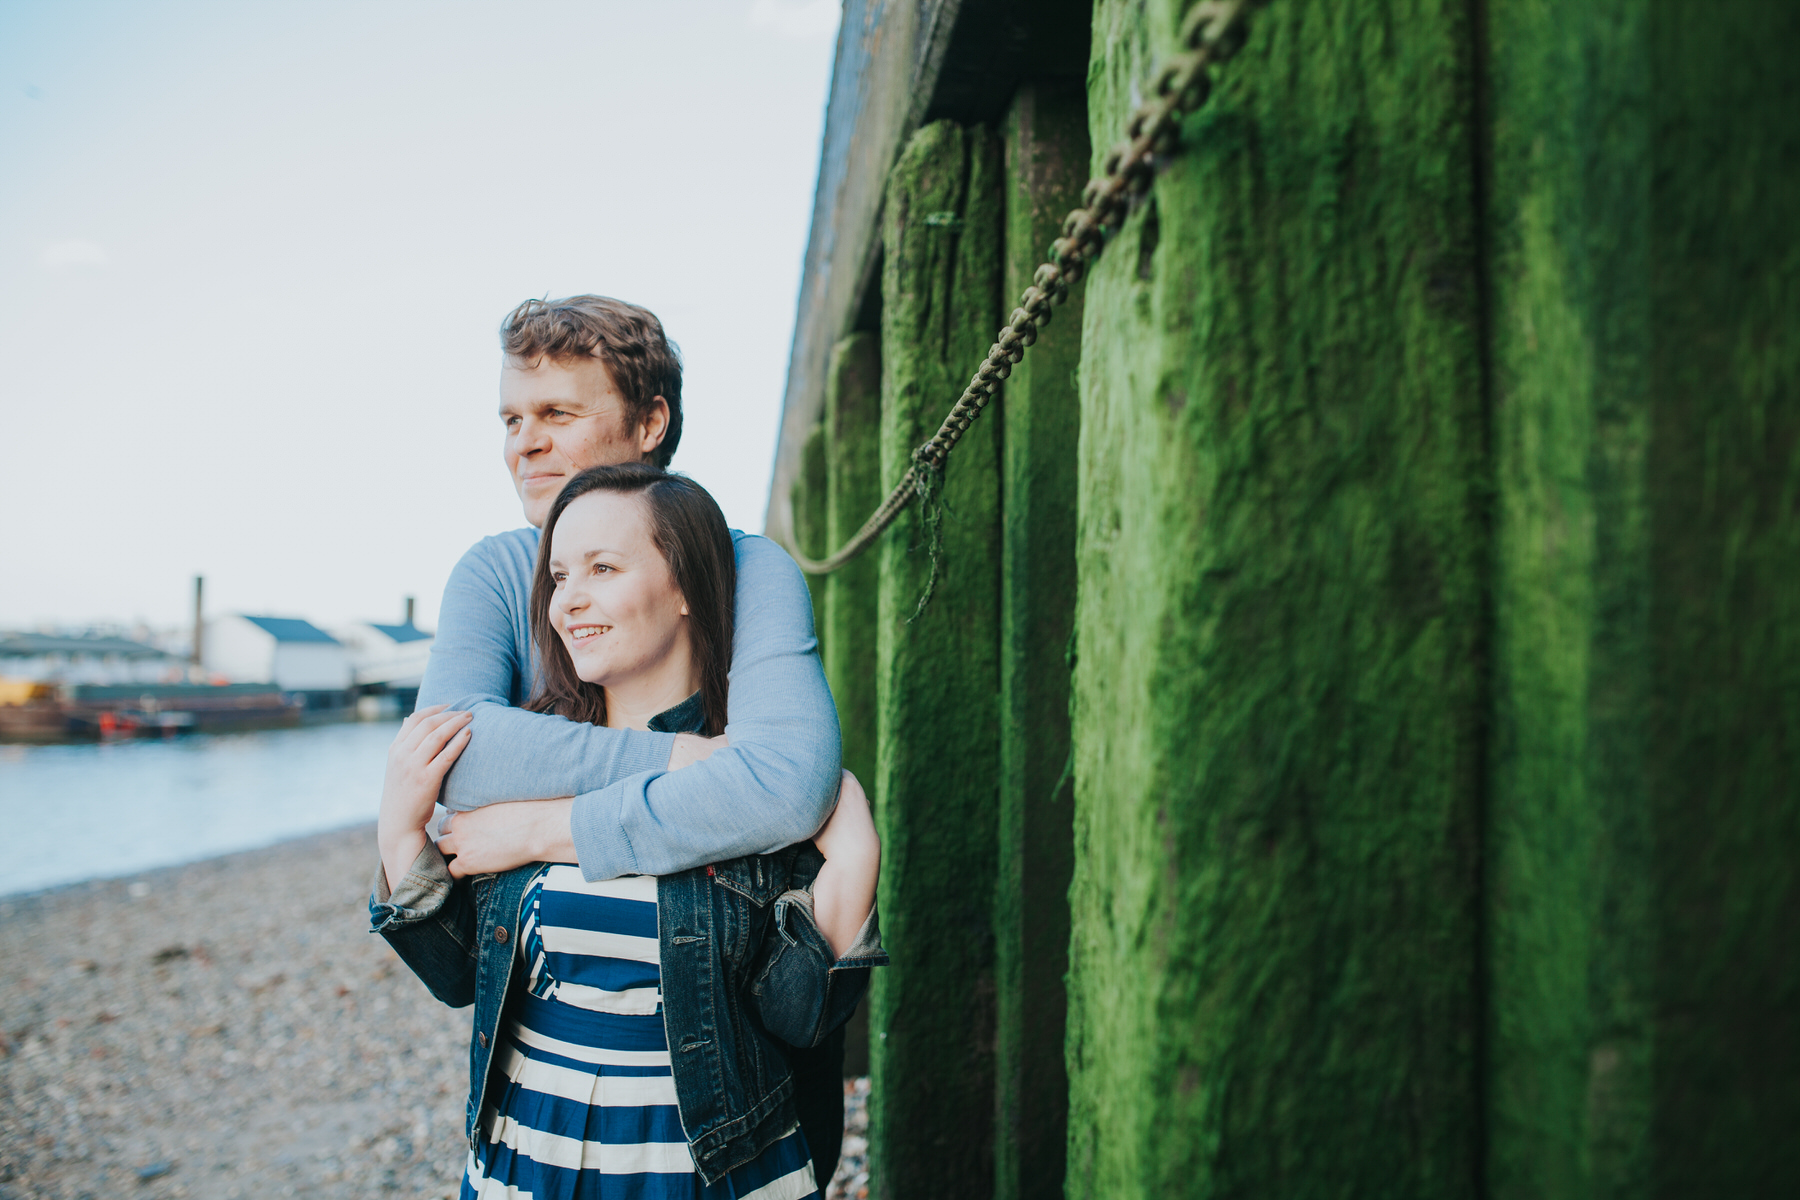 11-Quirky-engagement-London-green-moss-background.jpg